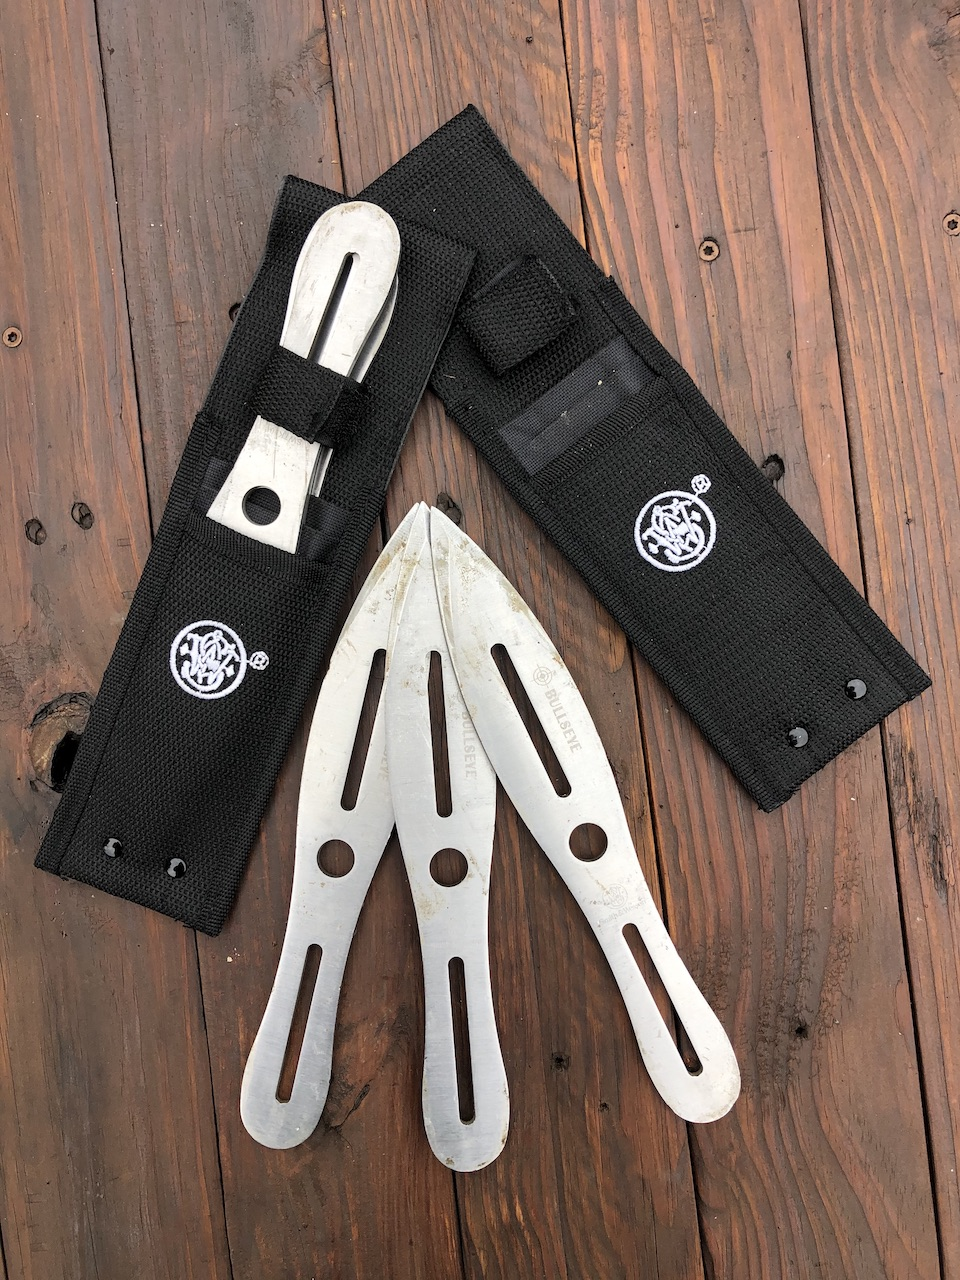 Smith & Wesson Throwing knives